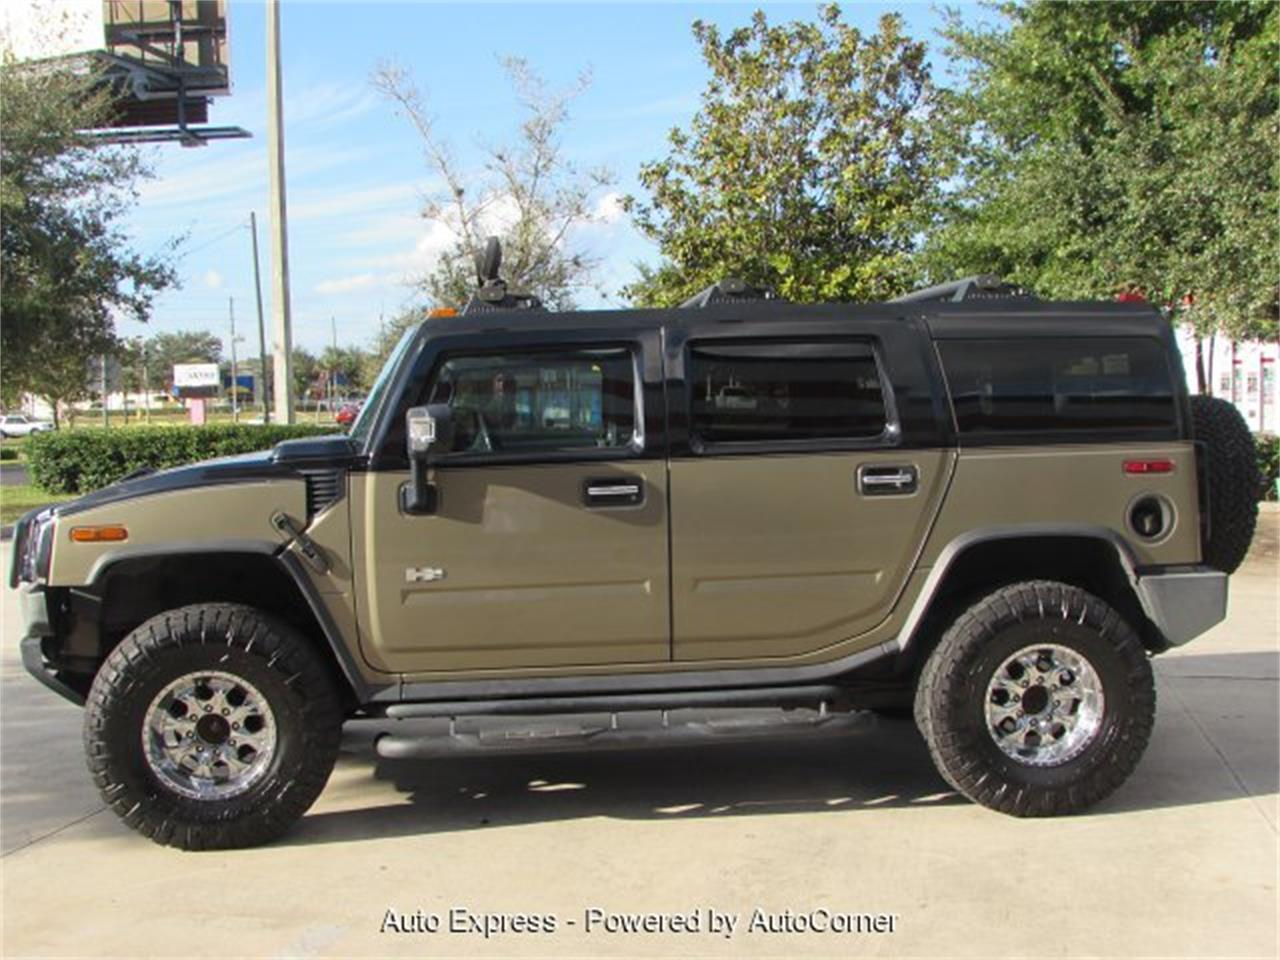 8 Hummer H8 for sale in Orlando, FL / ClassicCarsBay.com | hummer h2 for sale in florida